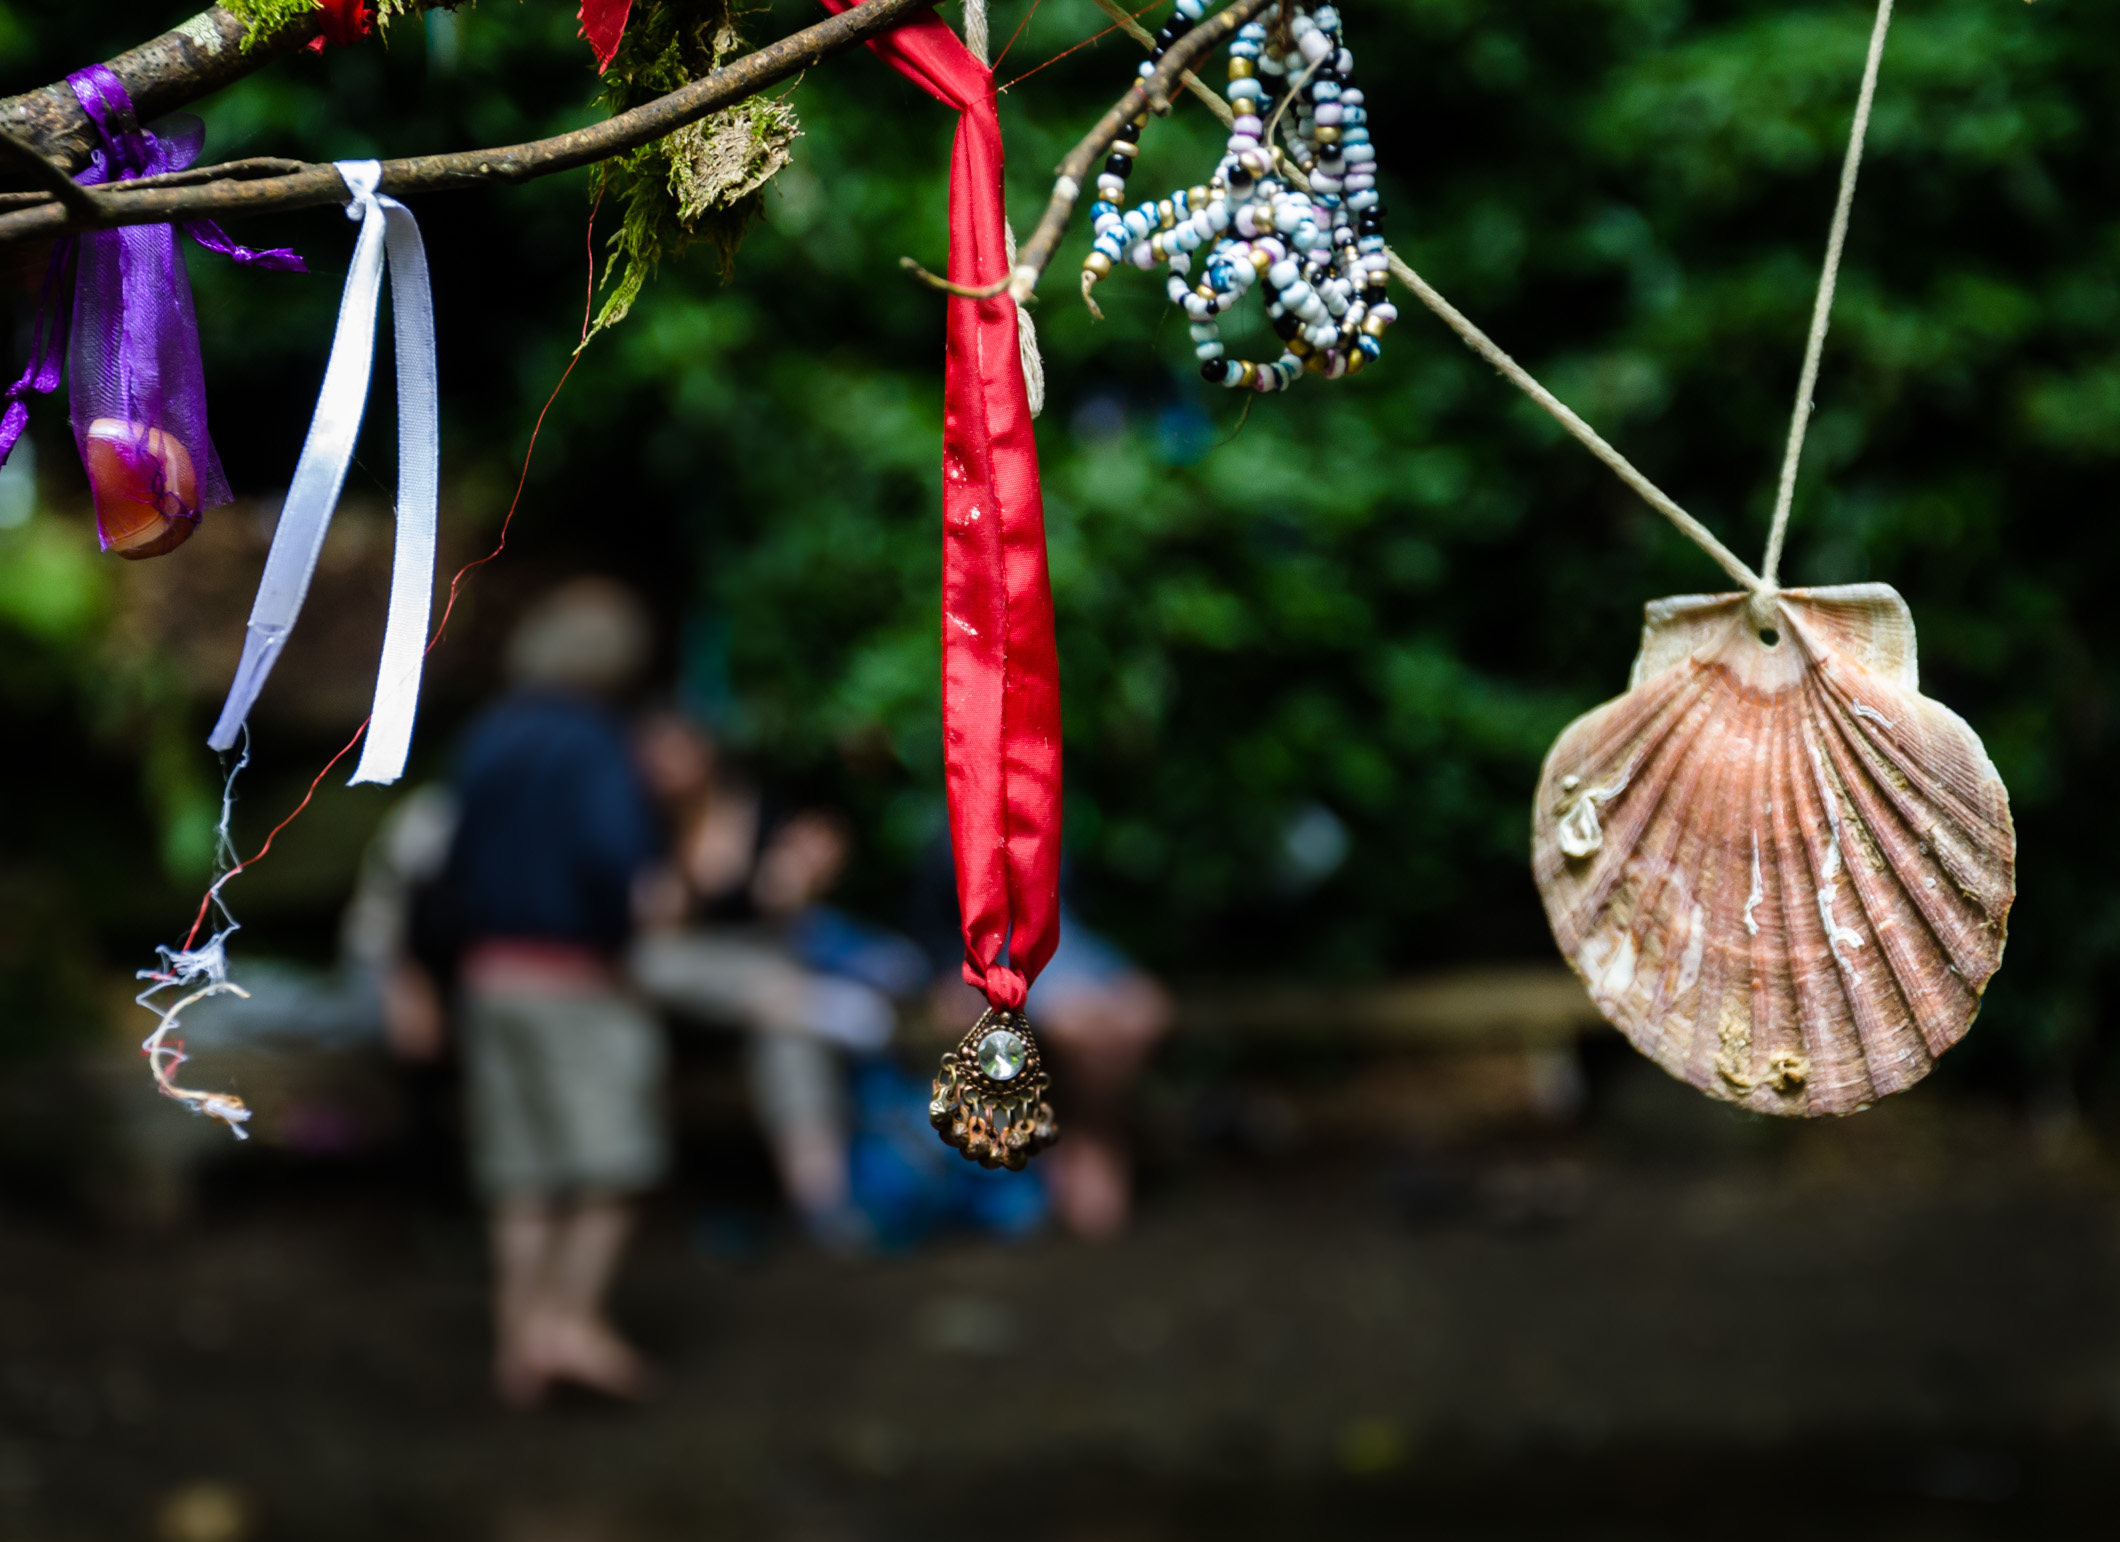 Charms hanging on a bush at St. Nectan's Glen